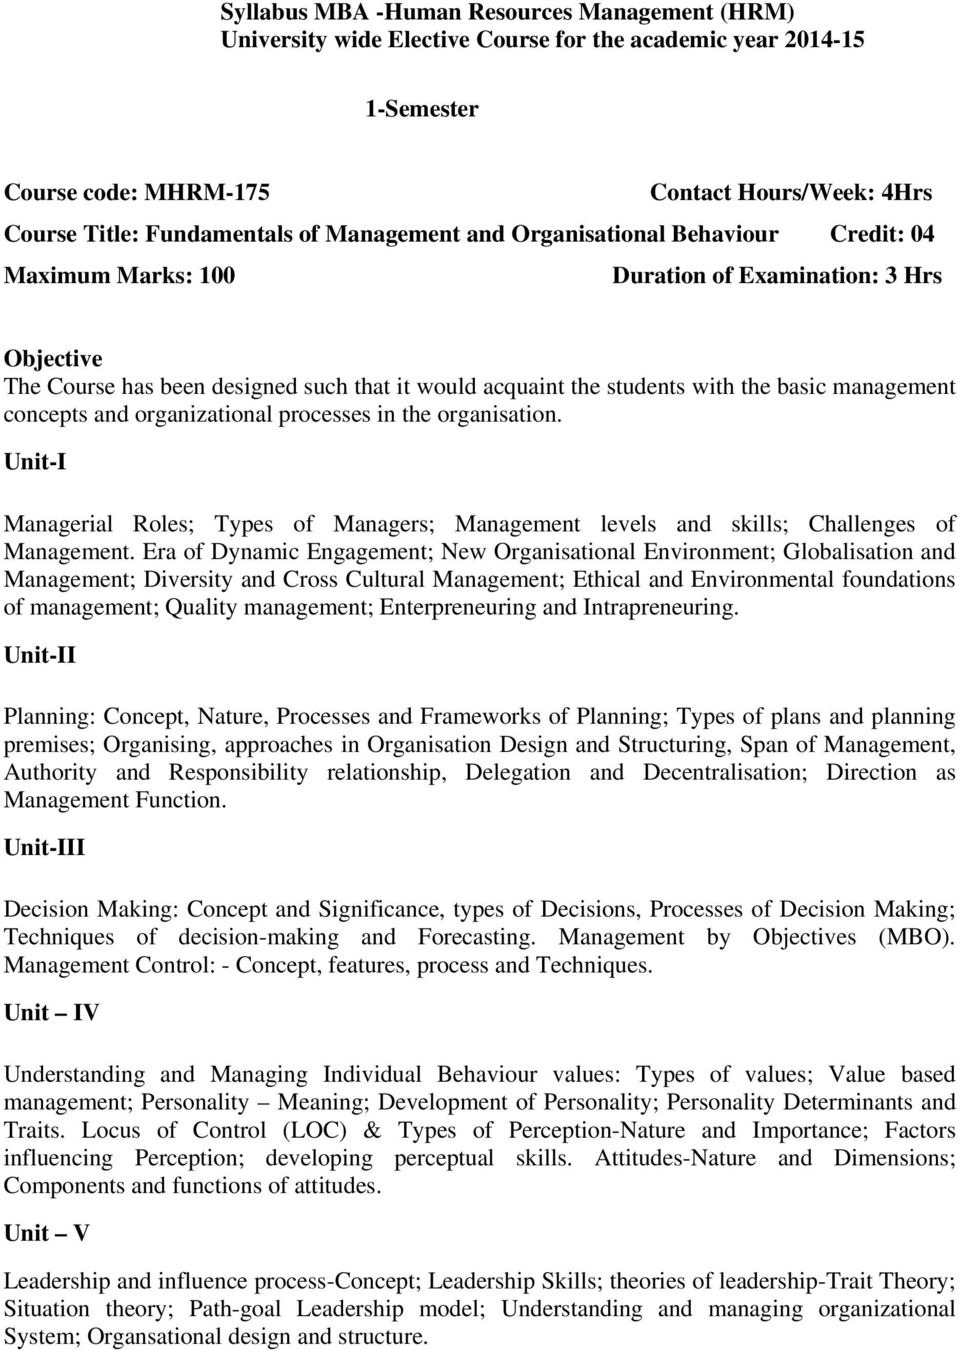 management concepts and organizational processes in the organisation. Unit-I Managerial Roles; Types of Managers; Management levels and skills; Challenges of Management.